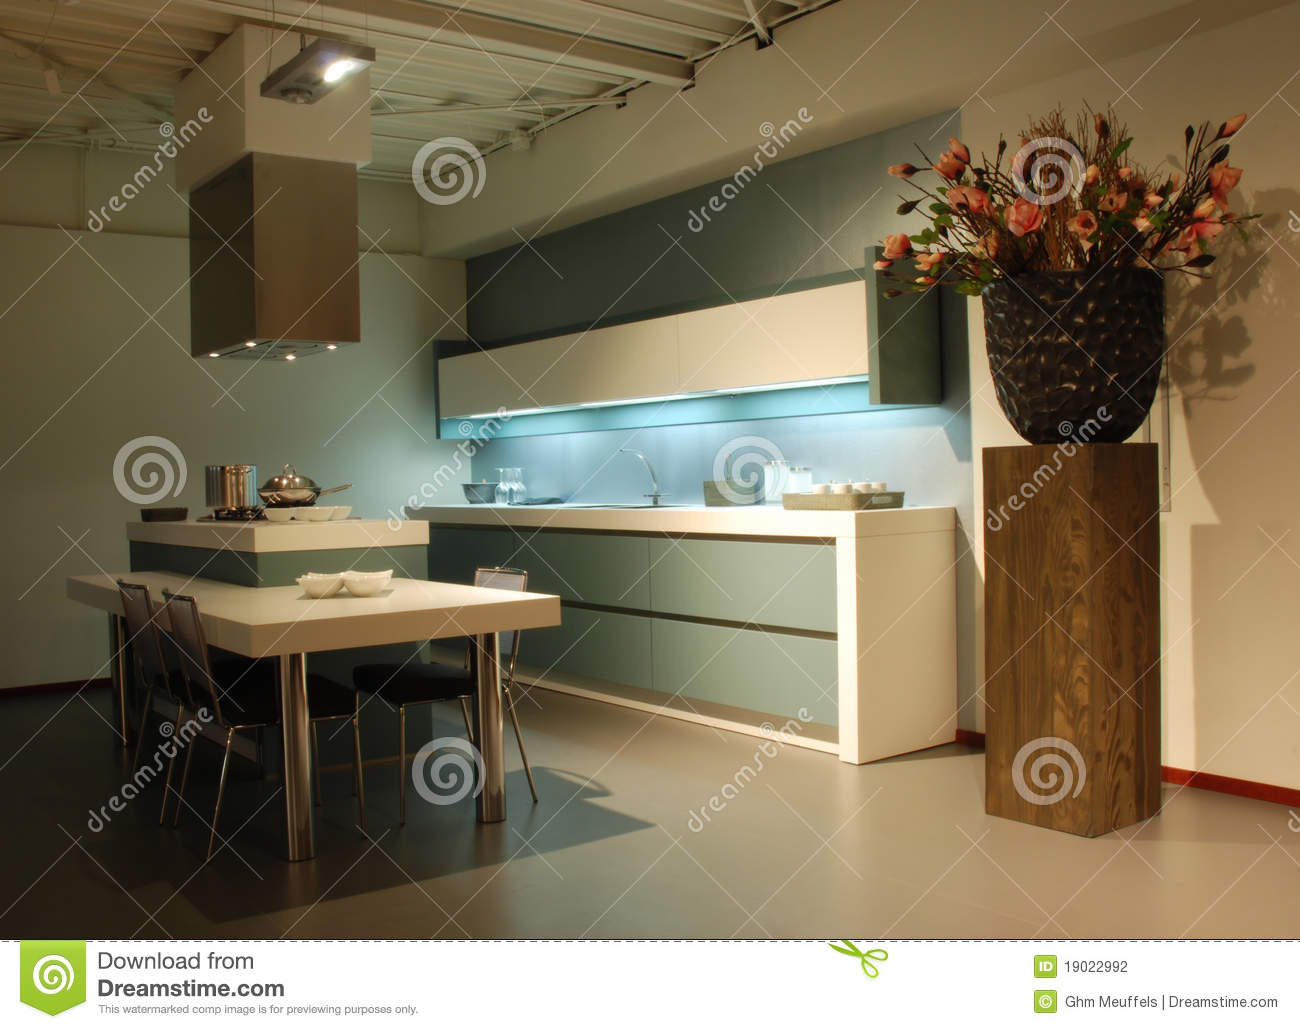 Interior design of modern green kitchen stock images   image: 9366134